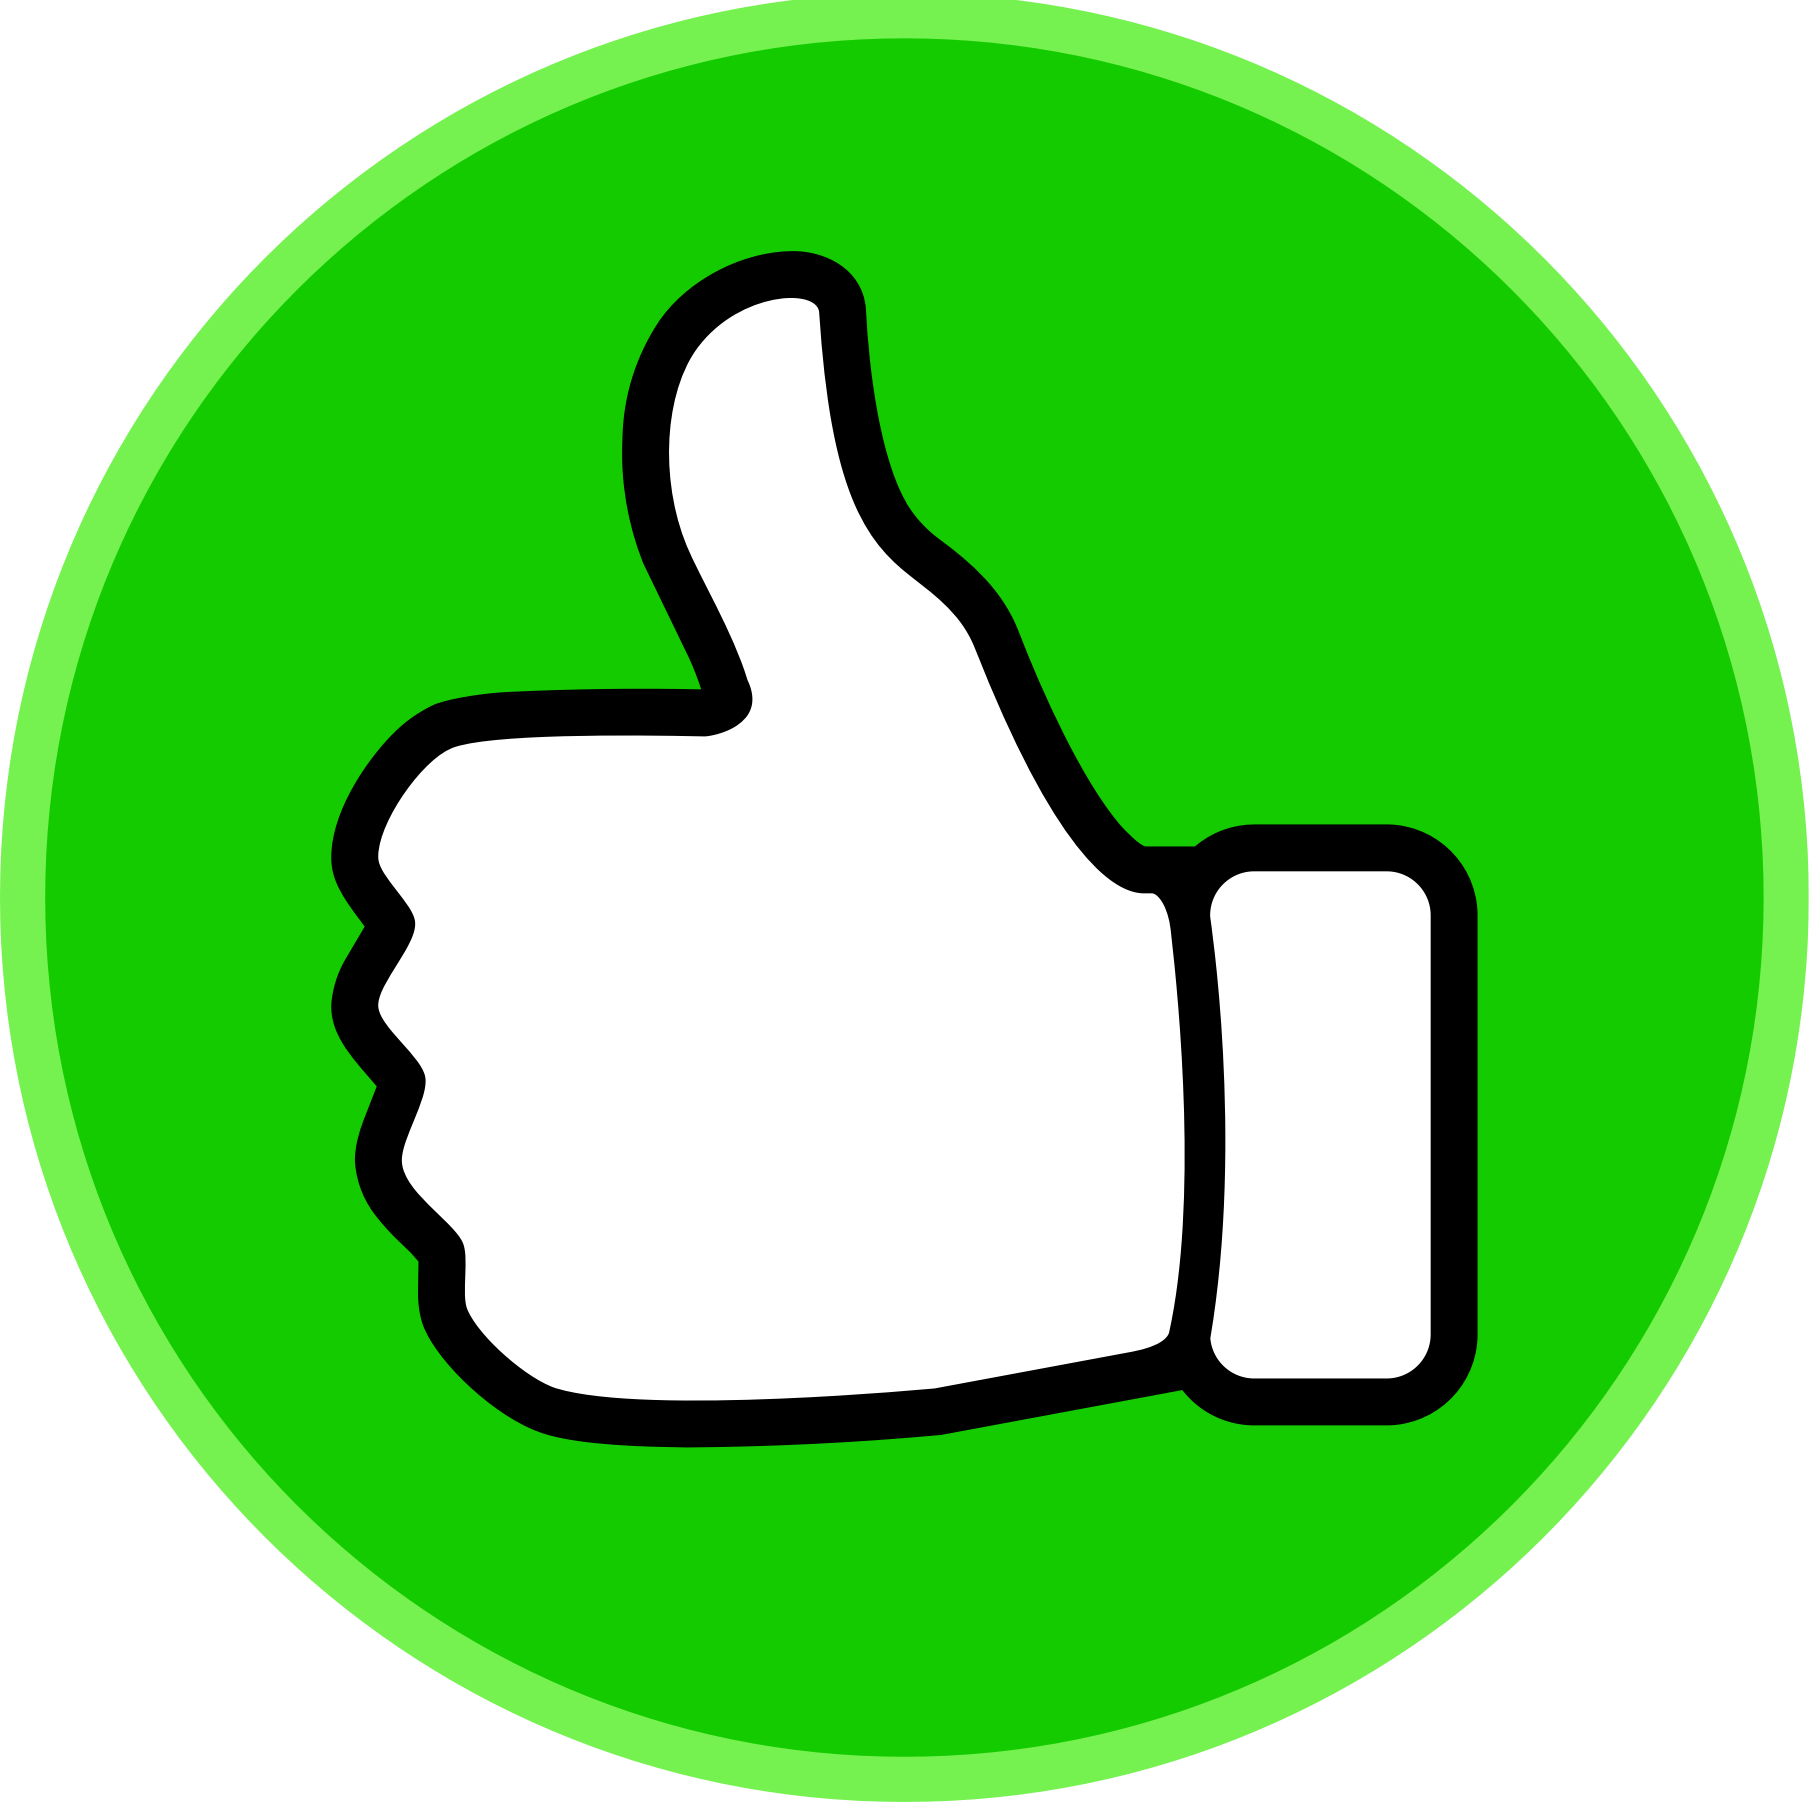 Thumbs Up Circle